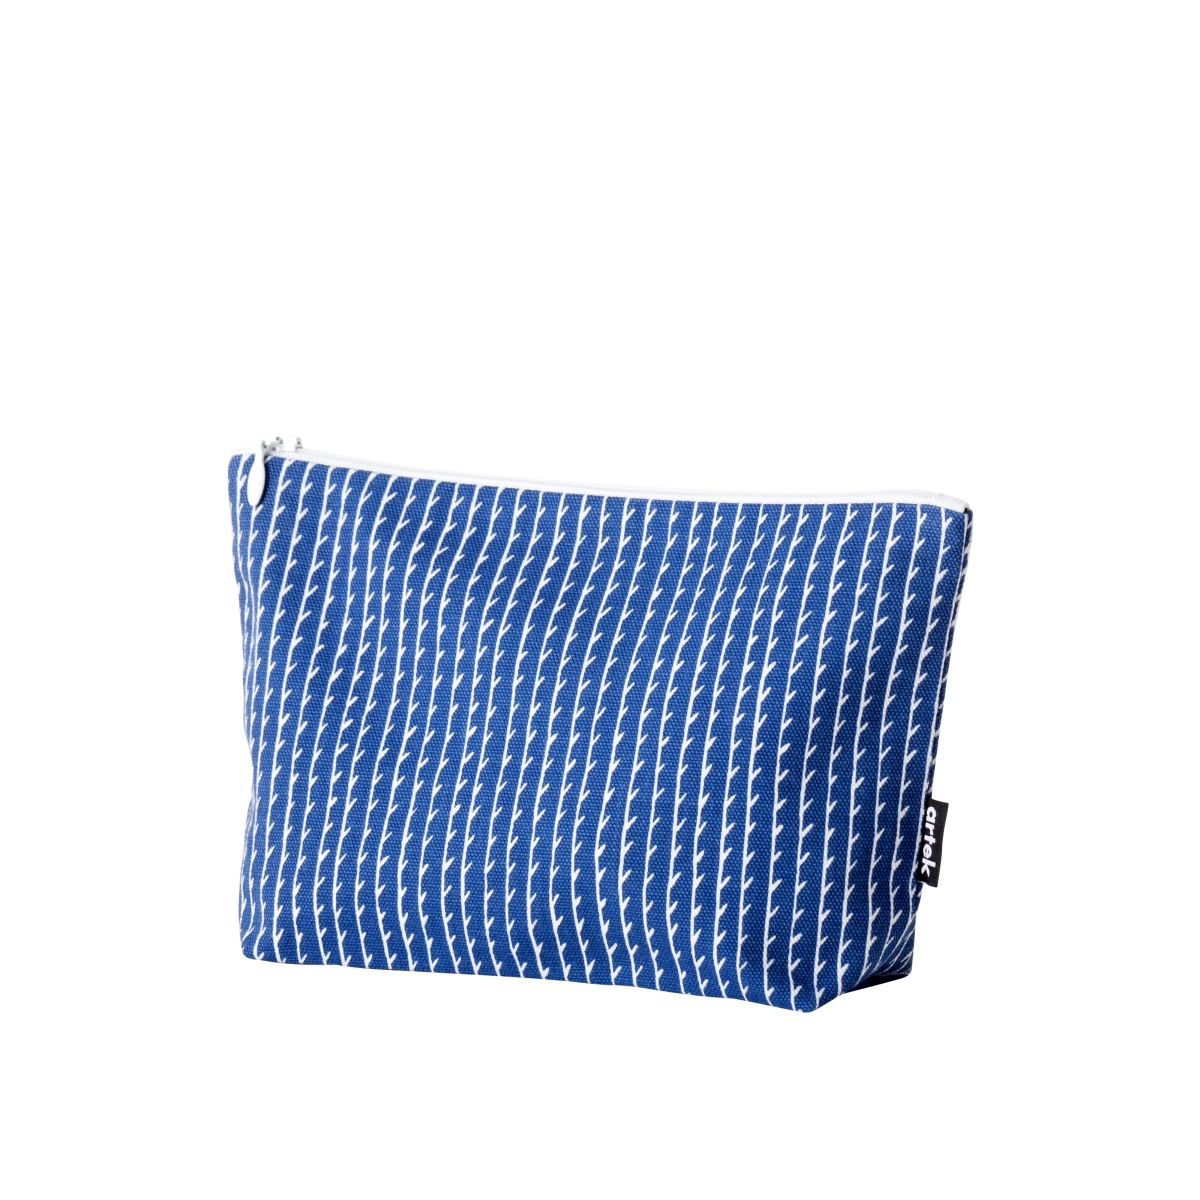 Rivi-Pouch-Small-Blue-White